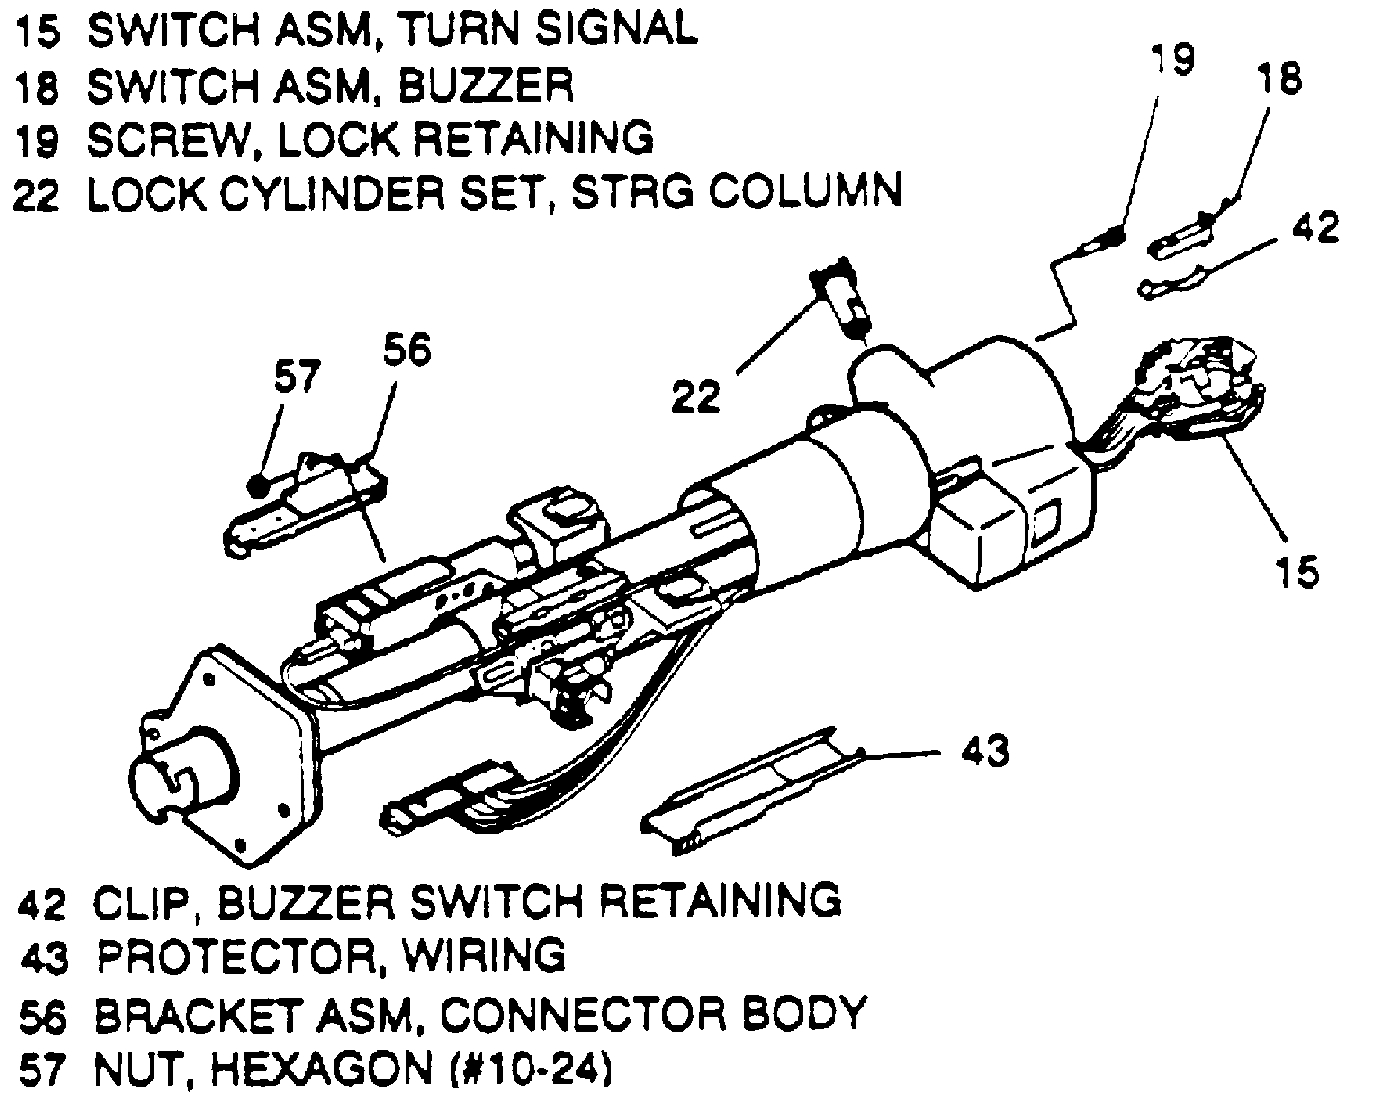 Lowering the Steering Column: I Have a 1994 GMC Safari. I